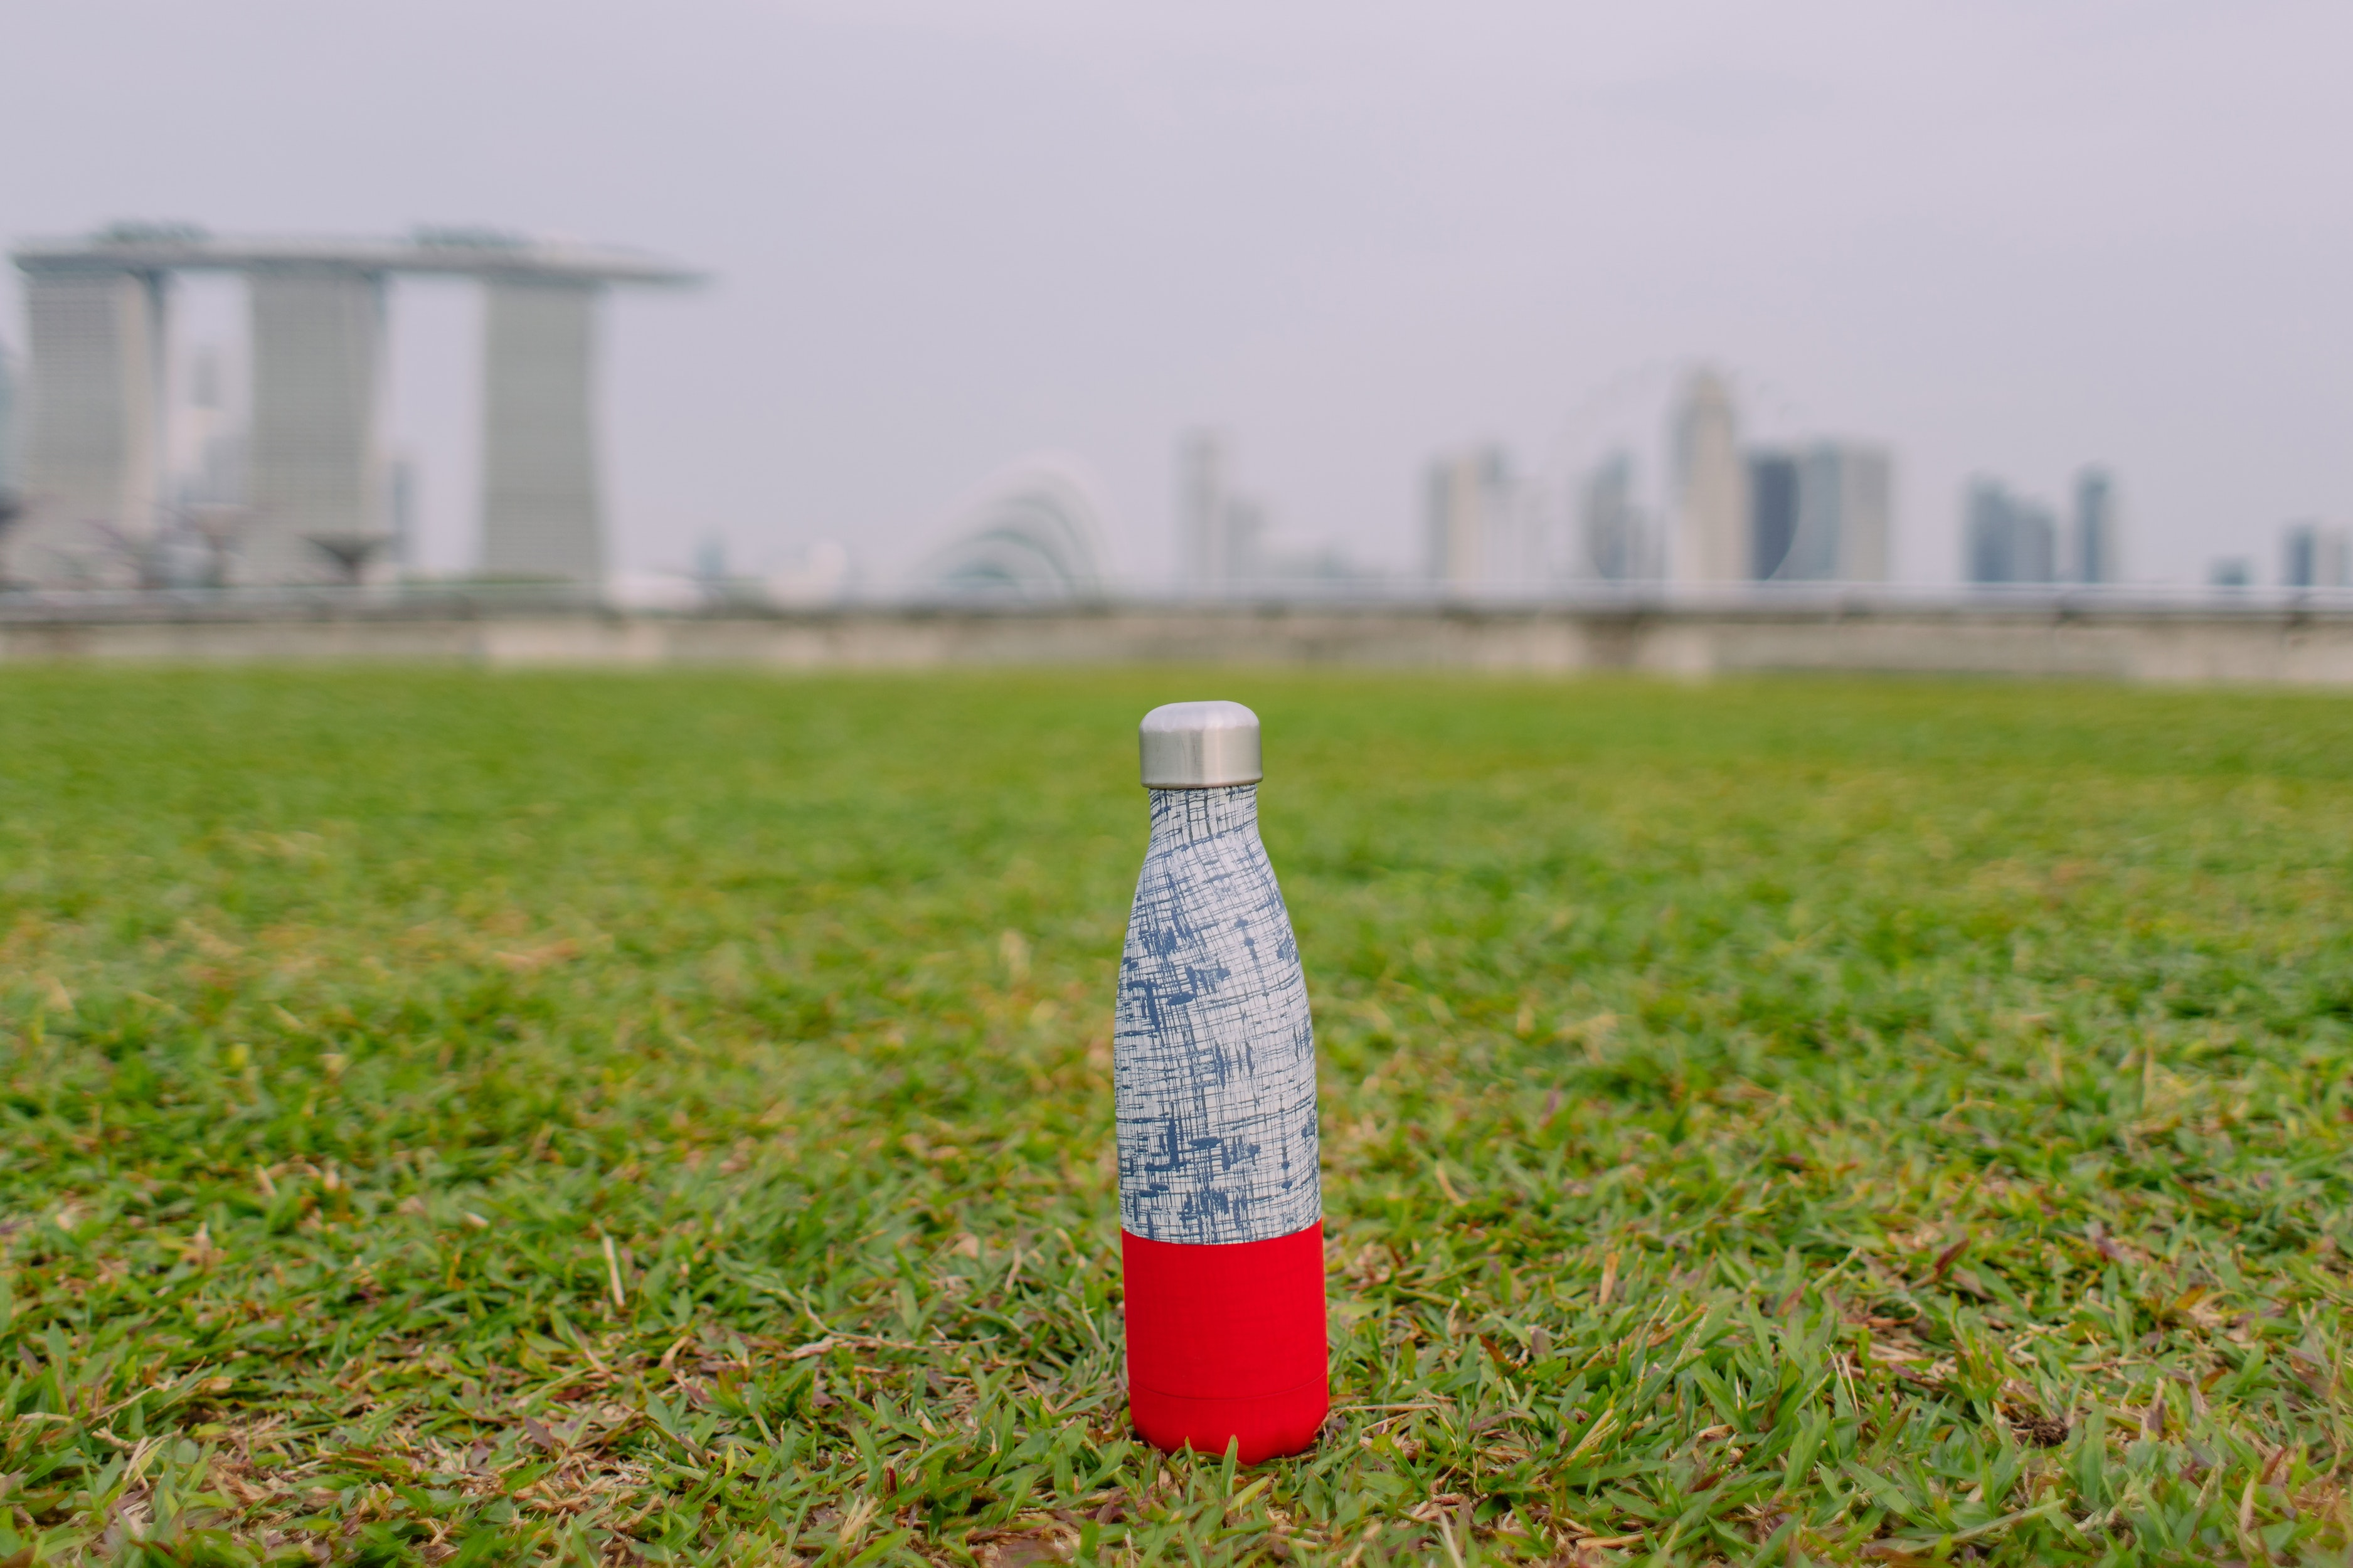 A reusable water bottle in the grass. Staying hydrated is important for our bodies and health as we age.